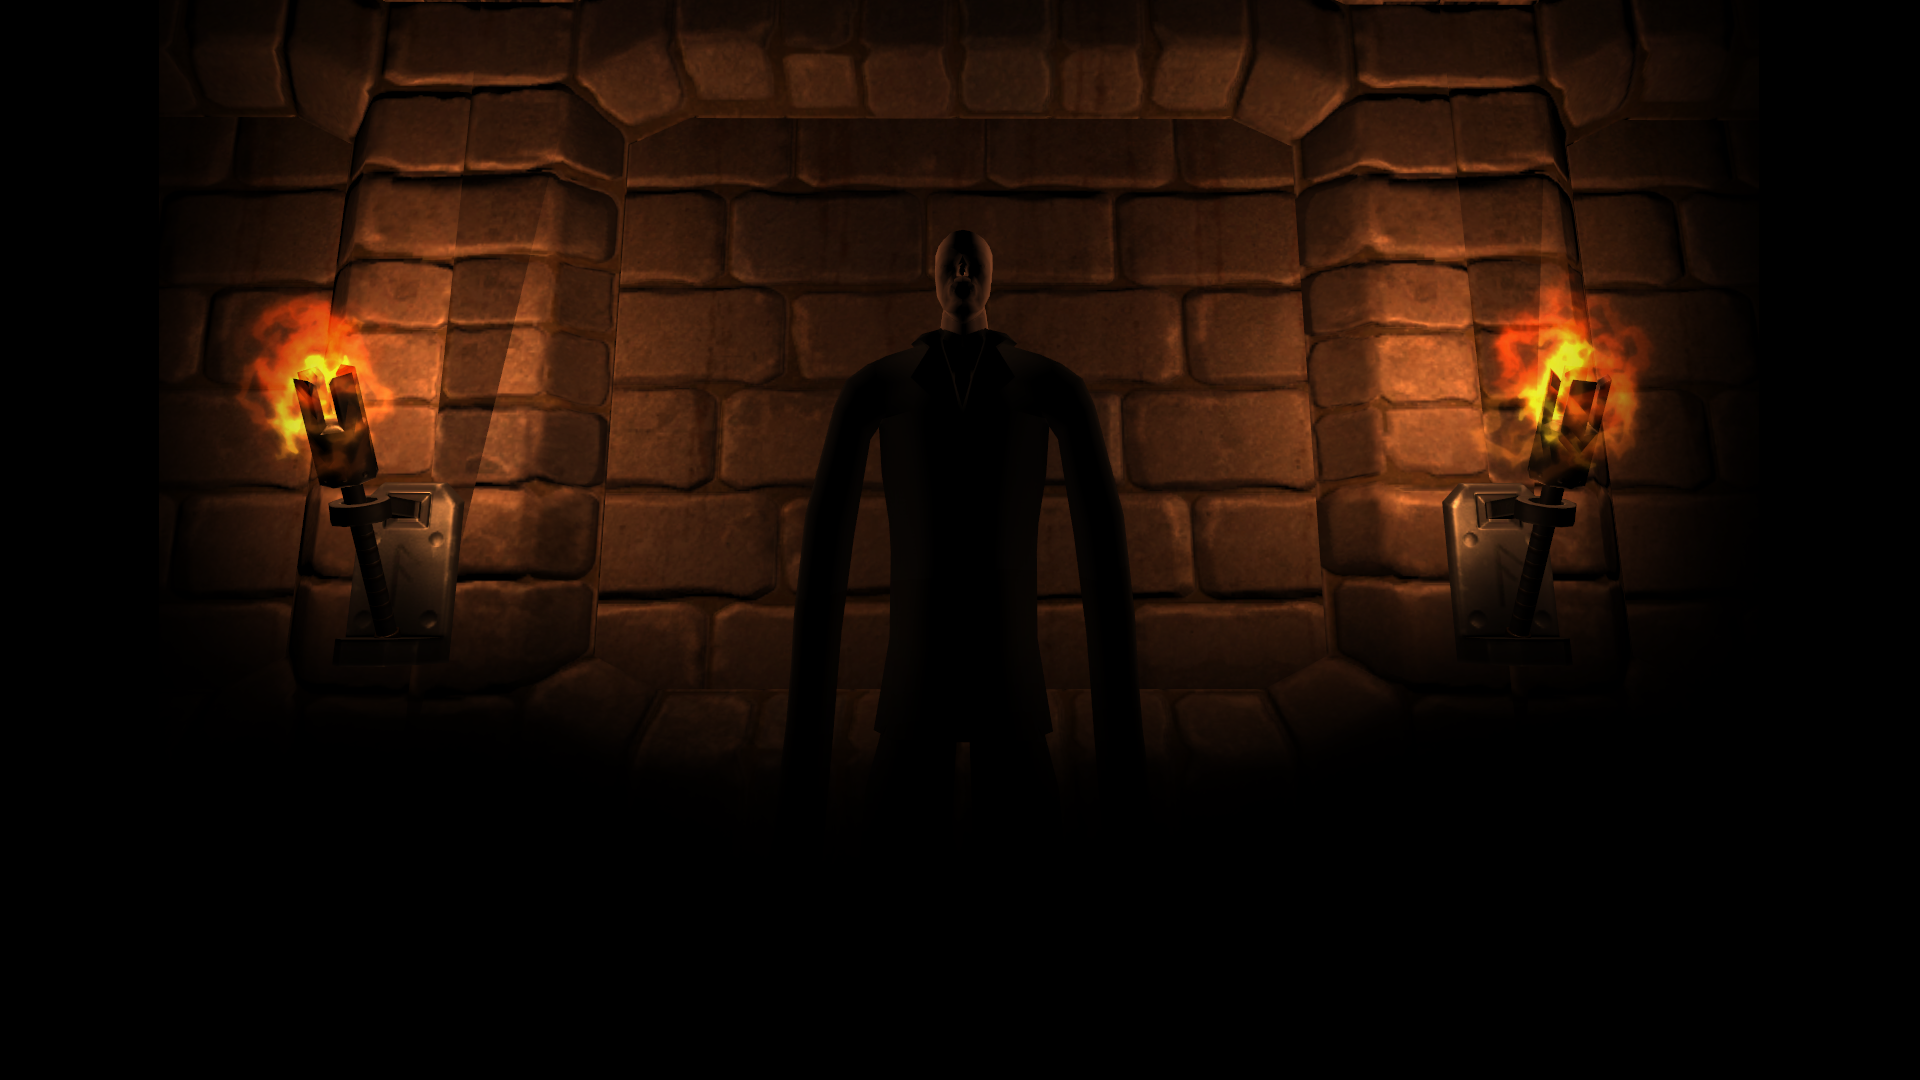 Slender Man: Amazon.co.uk: Appstore for Android